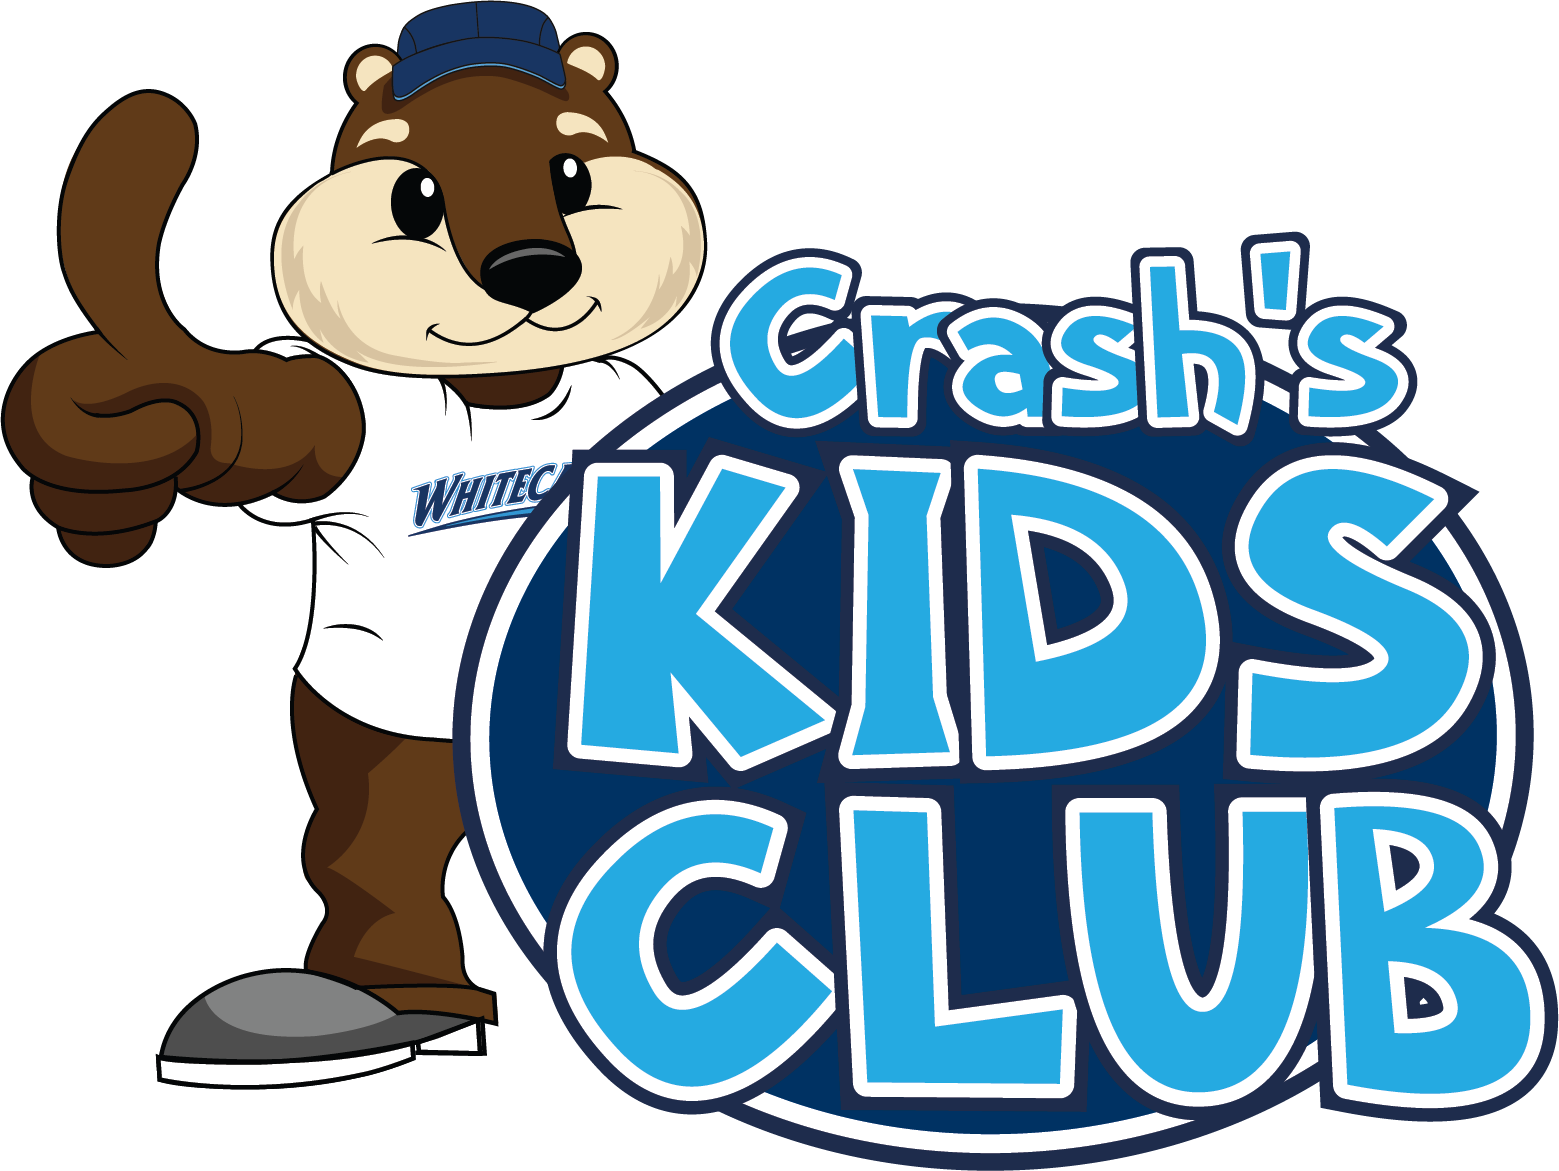 Baseball game on tv clipart banner free library Crash's Kids Club | MiLB.com Tickets | The Official Site of Minor ... banner free library